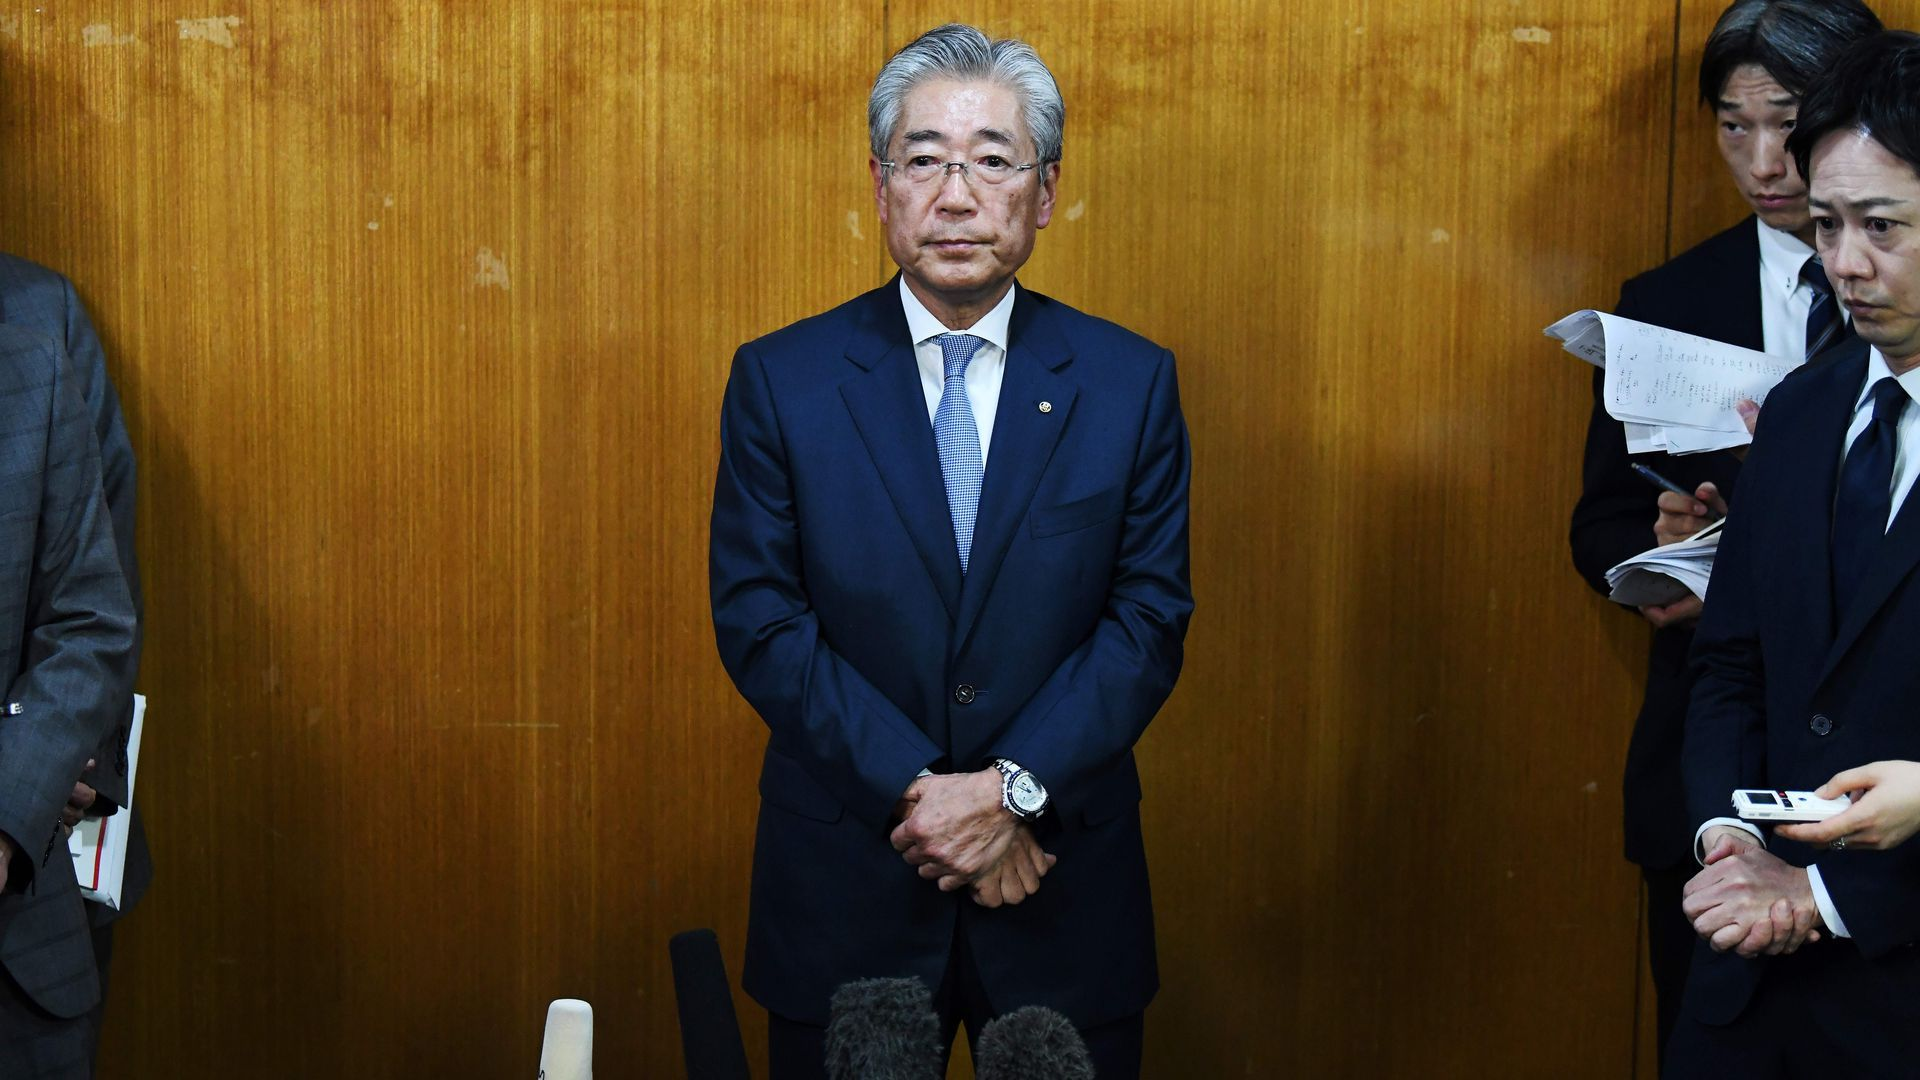 Japan's Olympic chief to step down amid corruption investigation